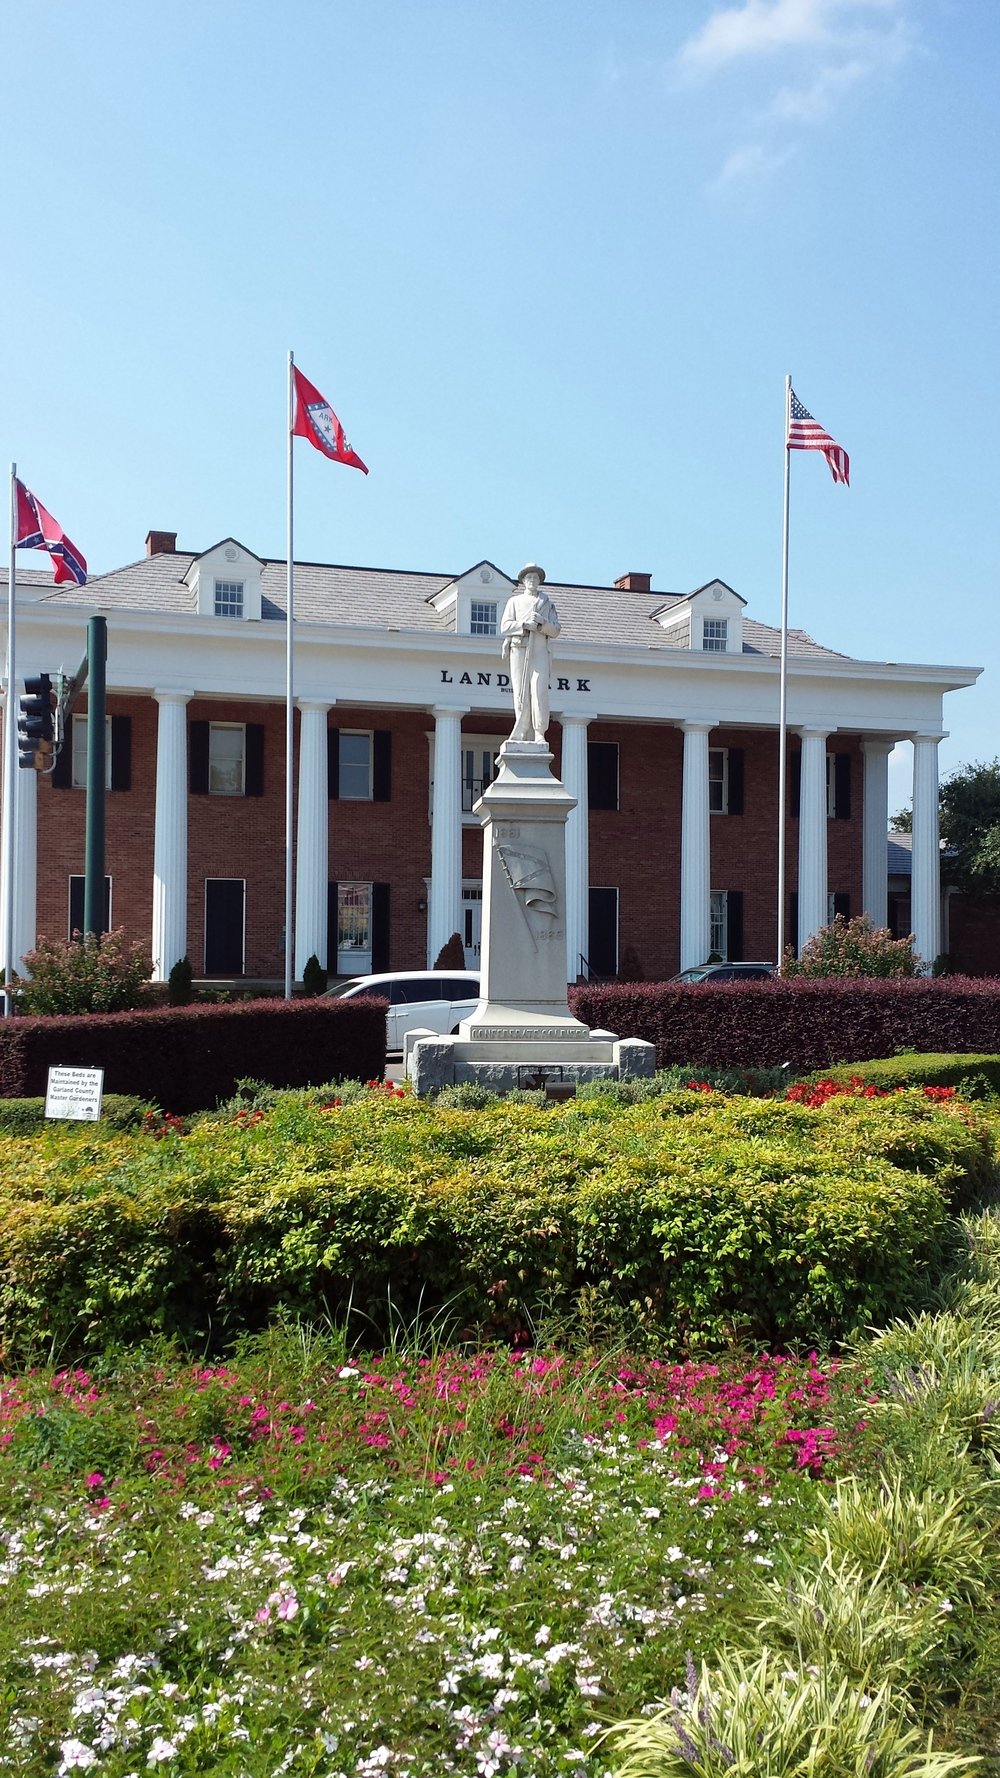 A Confederate Memorial stands in Downtown Hot Springs, along with the Confederate flag.  Such memorials are ubiquitous across the South.